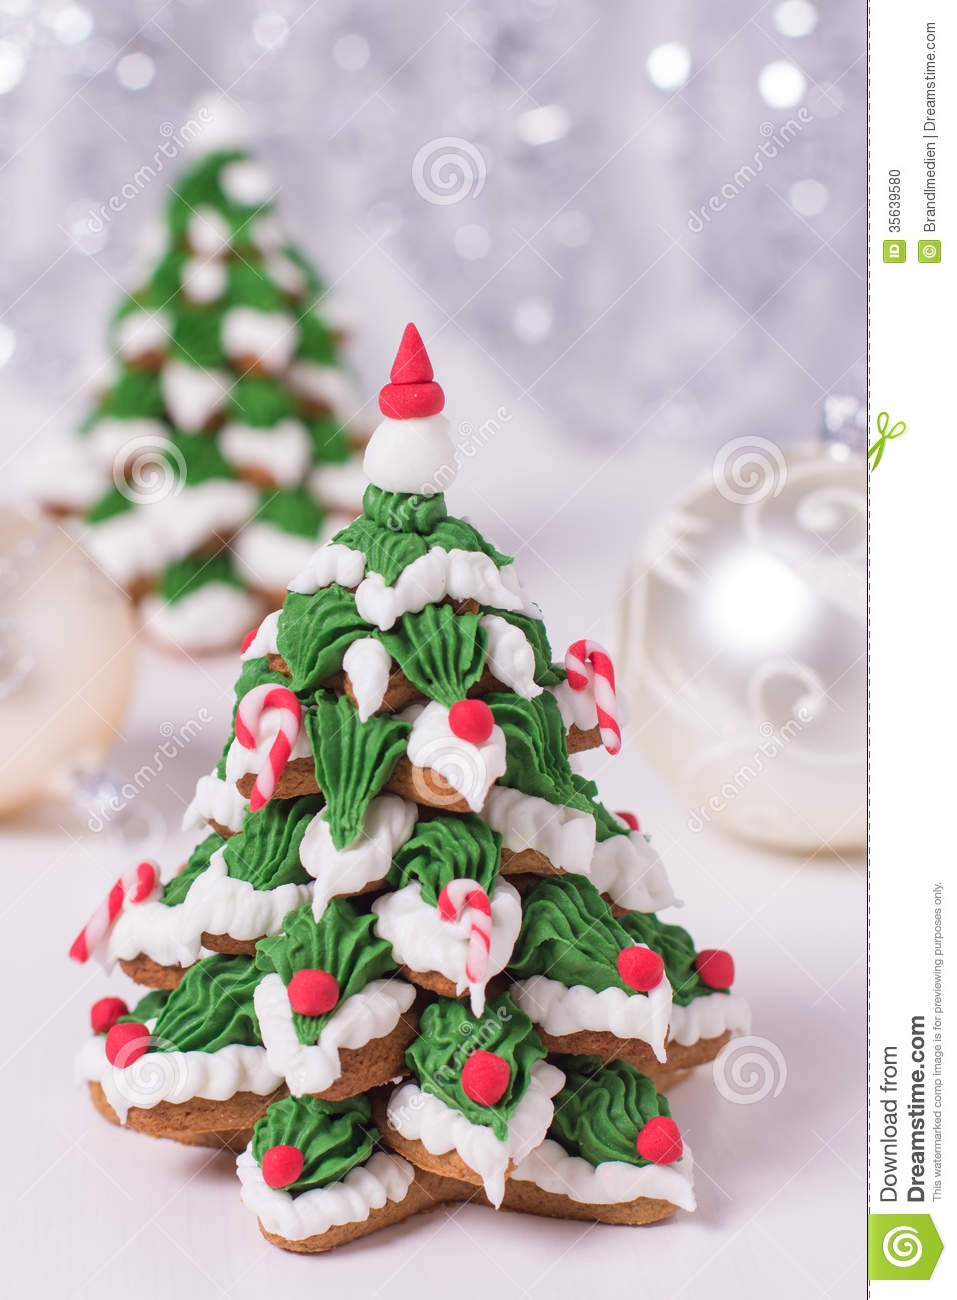 Two Frosted Gingerbread Cookies Stock Photo Image Of Dessert